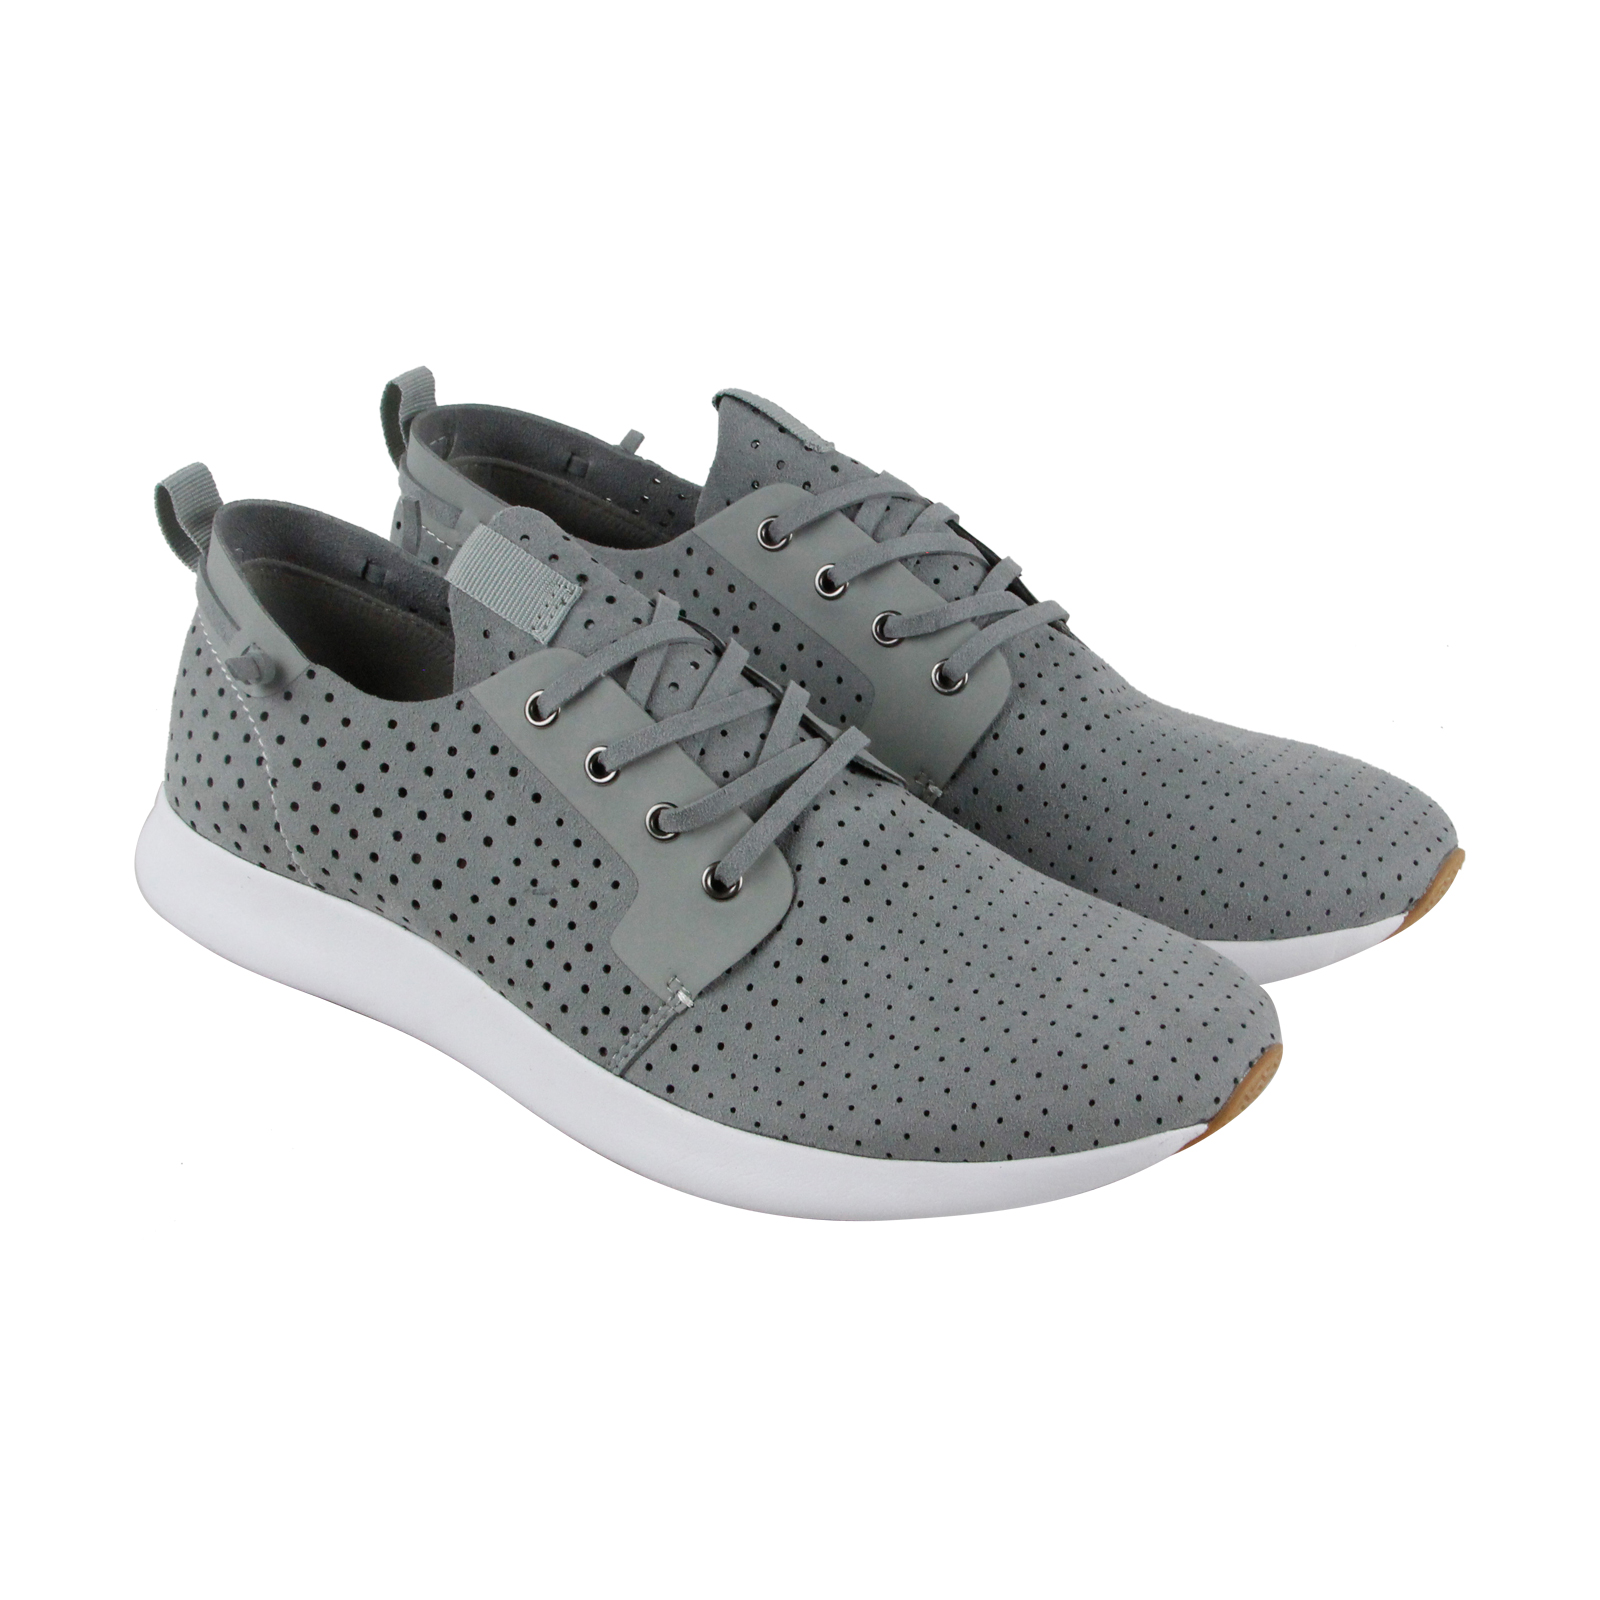 895581b1dcb Steve Madden Mens P-Chyll Sneakers Shoes